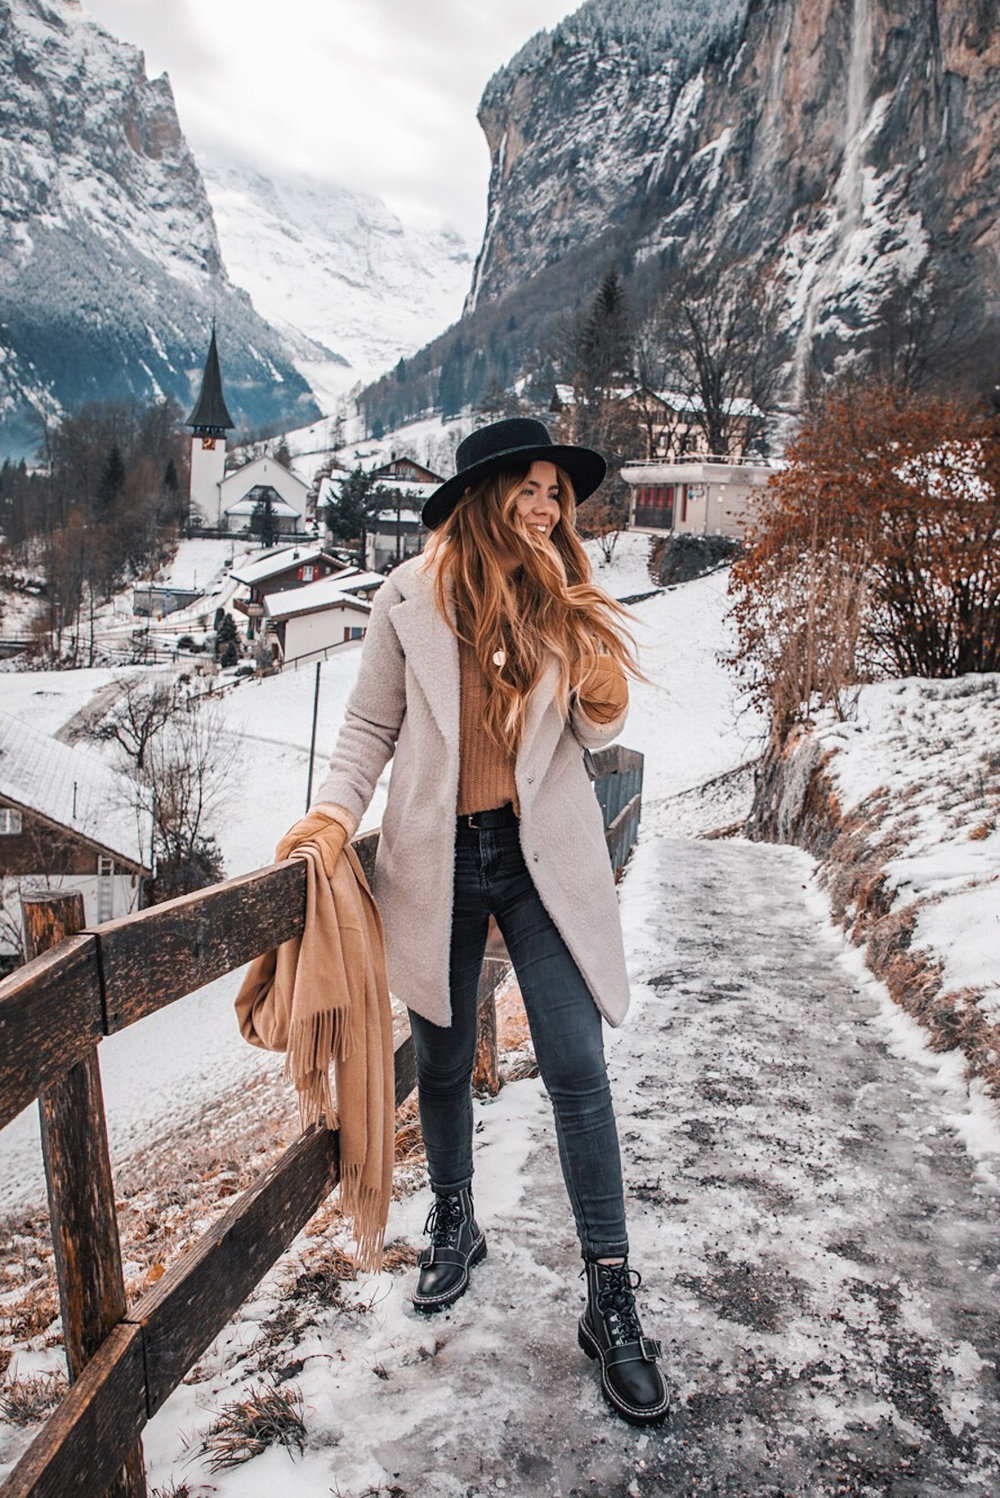 stylish-winter-outfits-switzerland-19.jpg